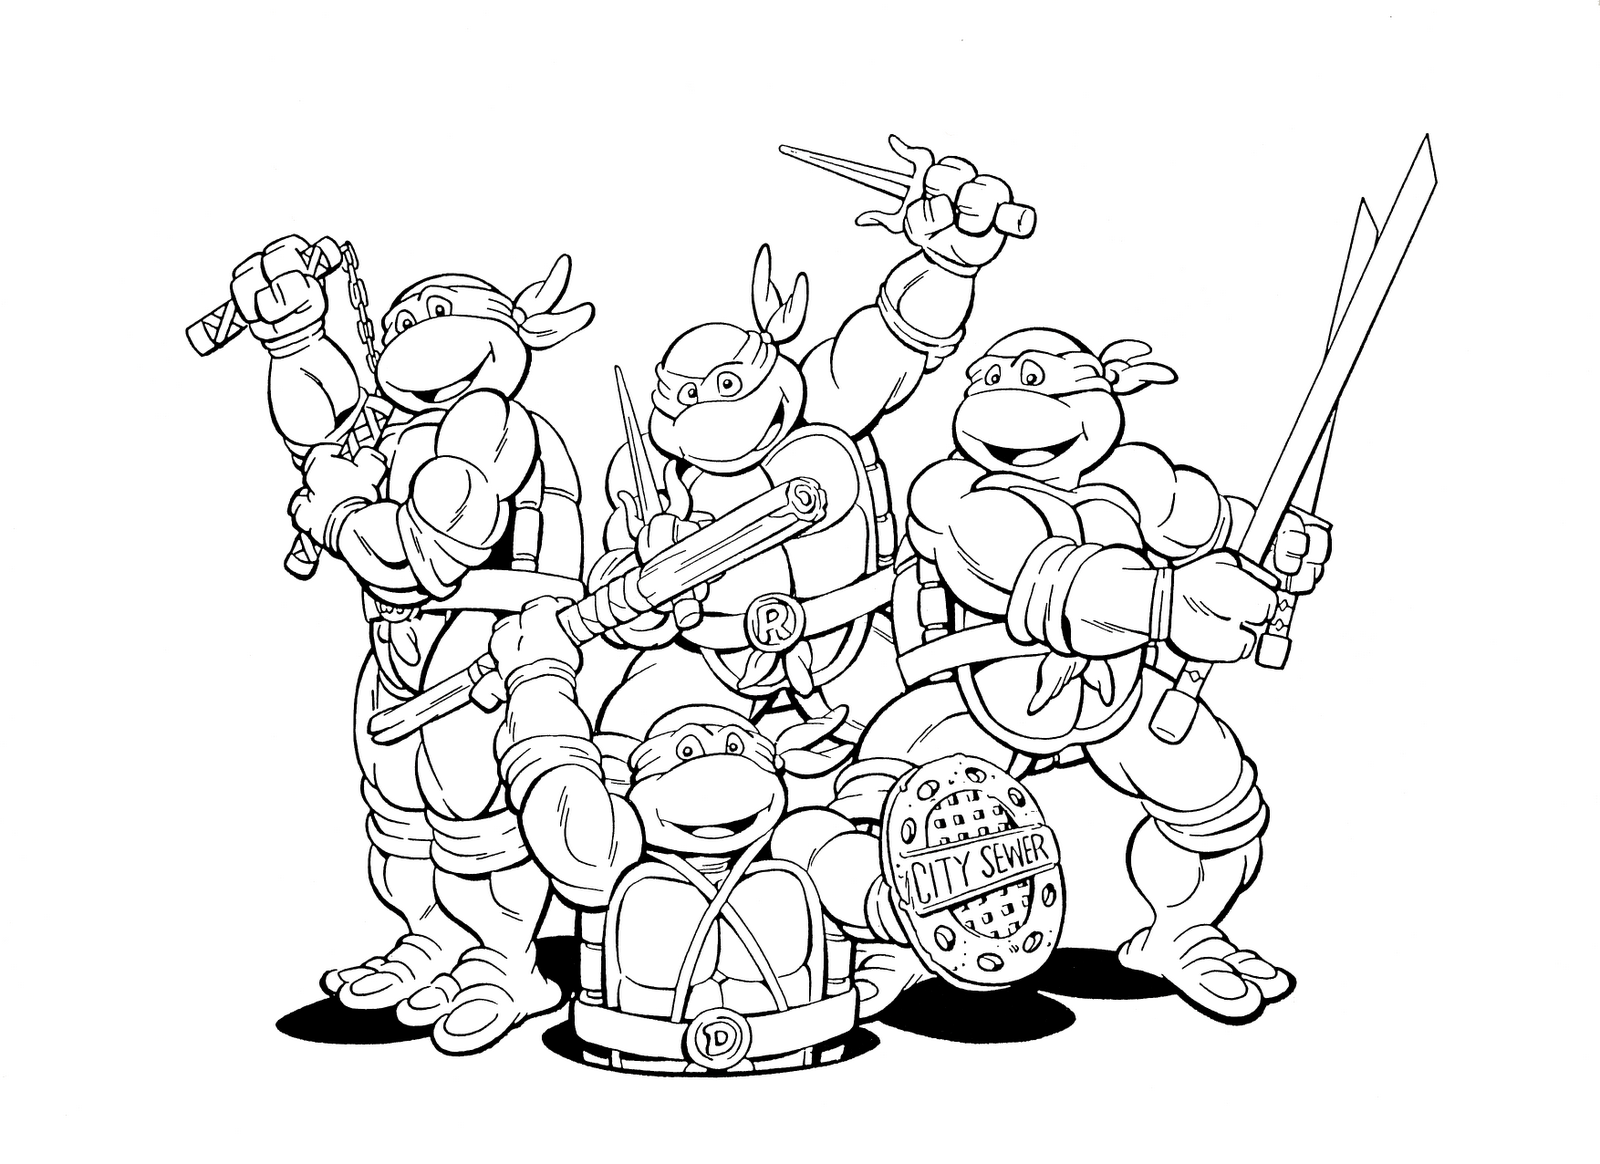 ninja turtle coloring book pages ninja turtle coloring book pages book turtle ninja coloring pages